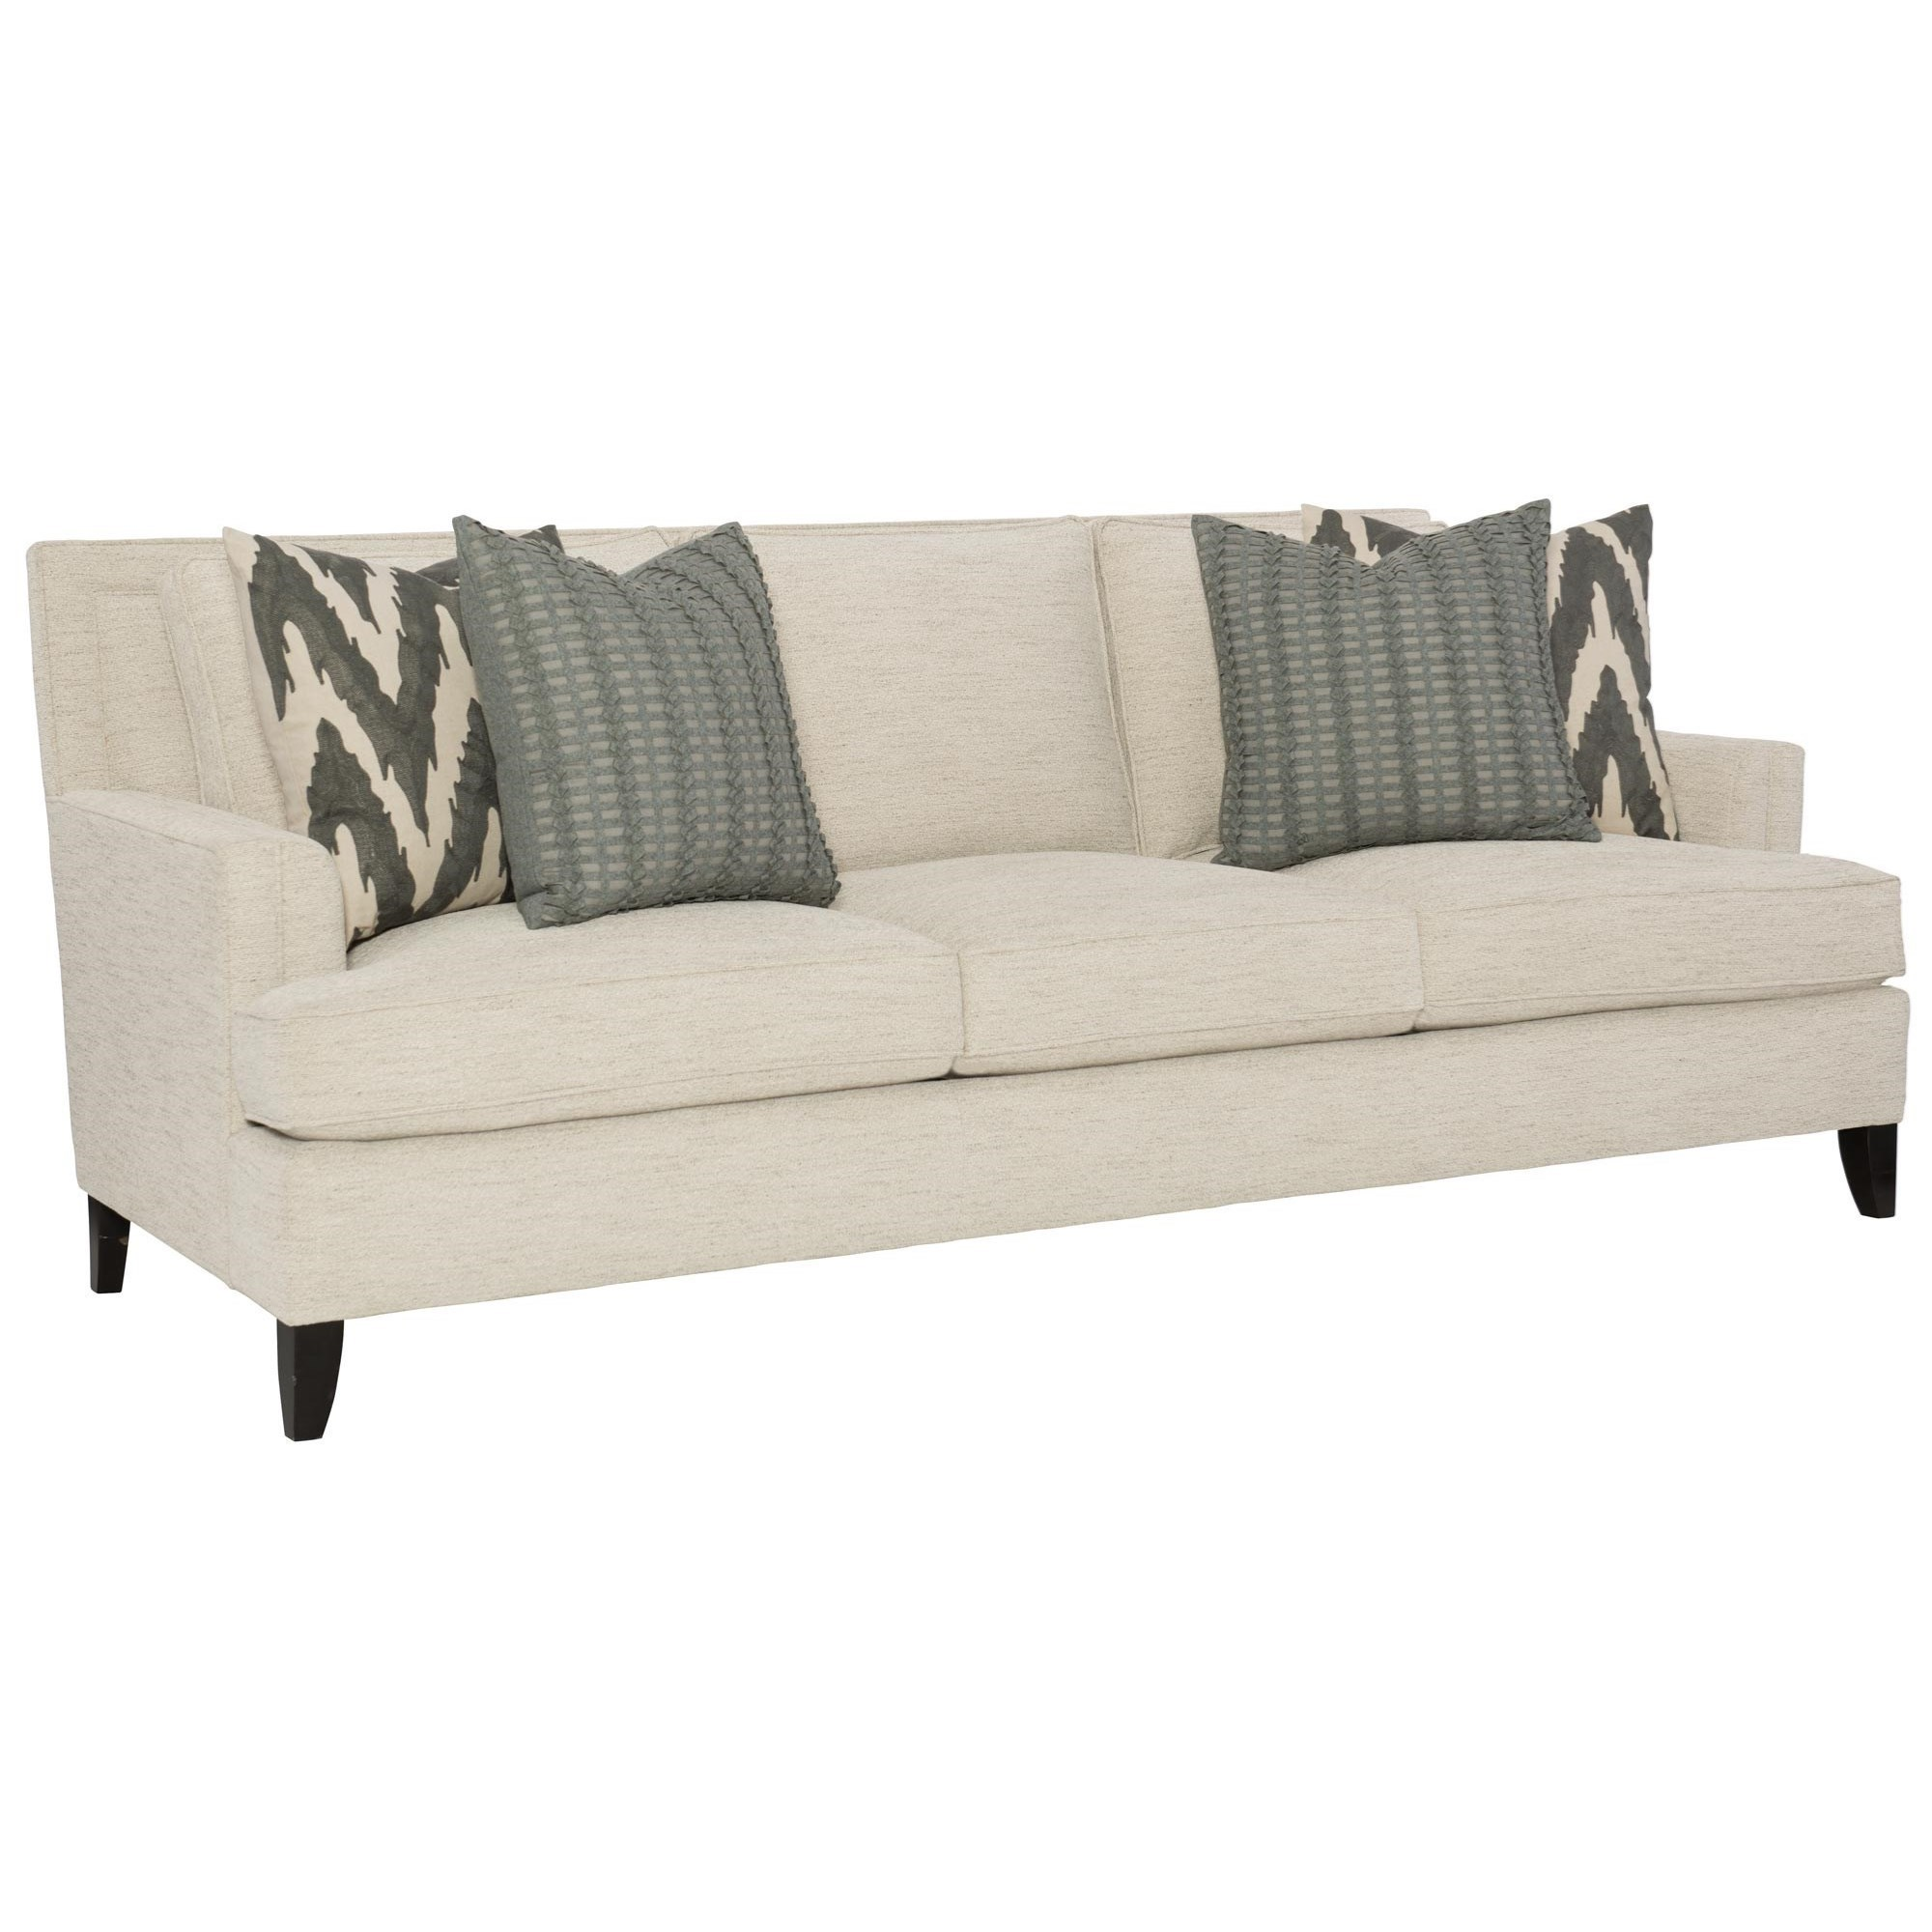 addison sofa ashley furniture simmons sofas at sears any more reviews on sectional